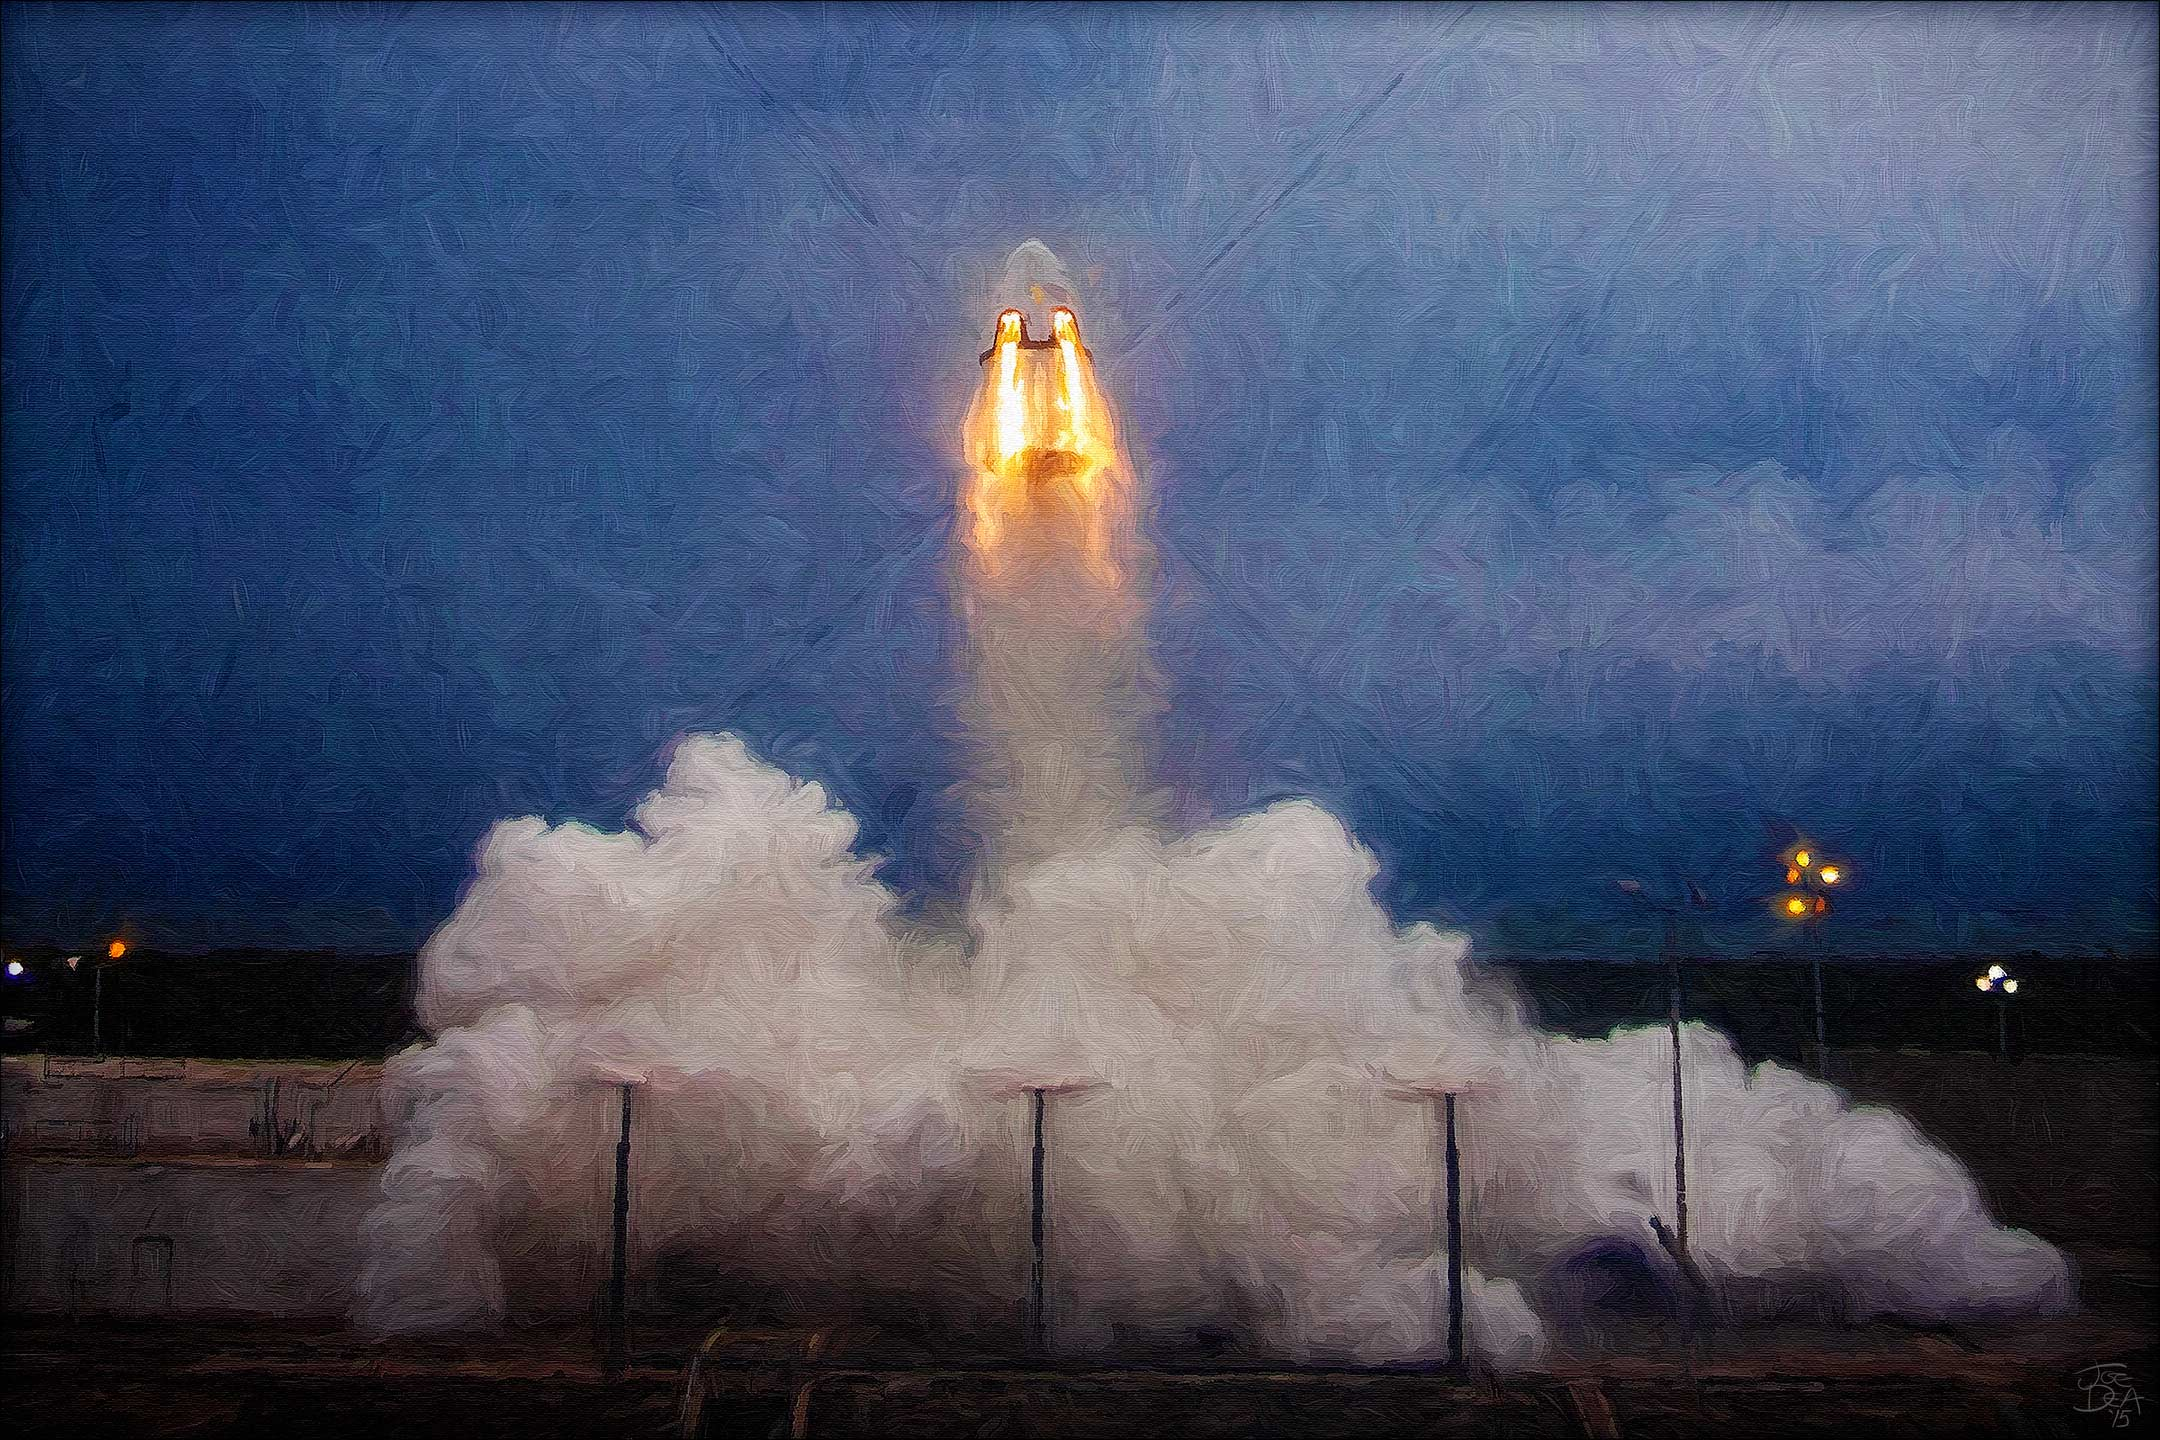 Joe-Dea-SpaceX-Abort-Test-Painting-LB.jpg